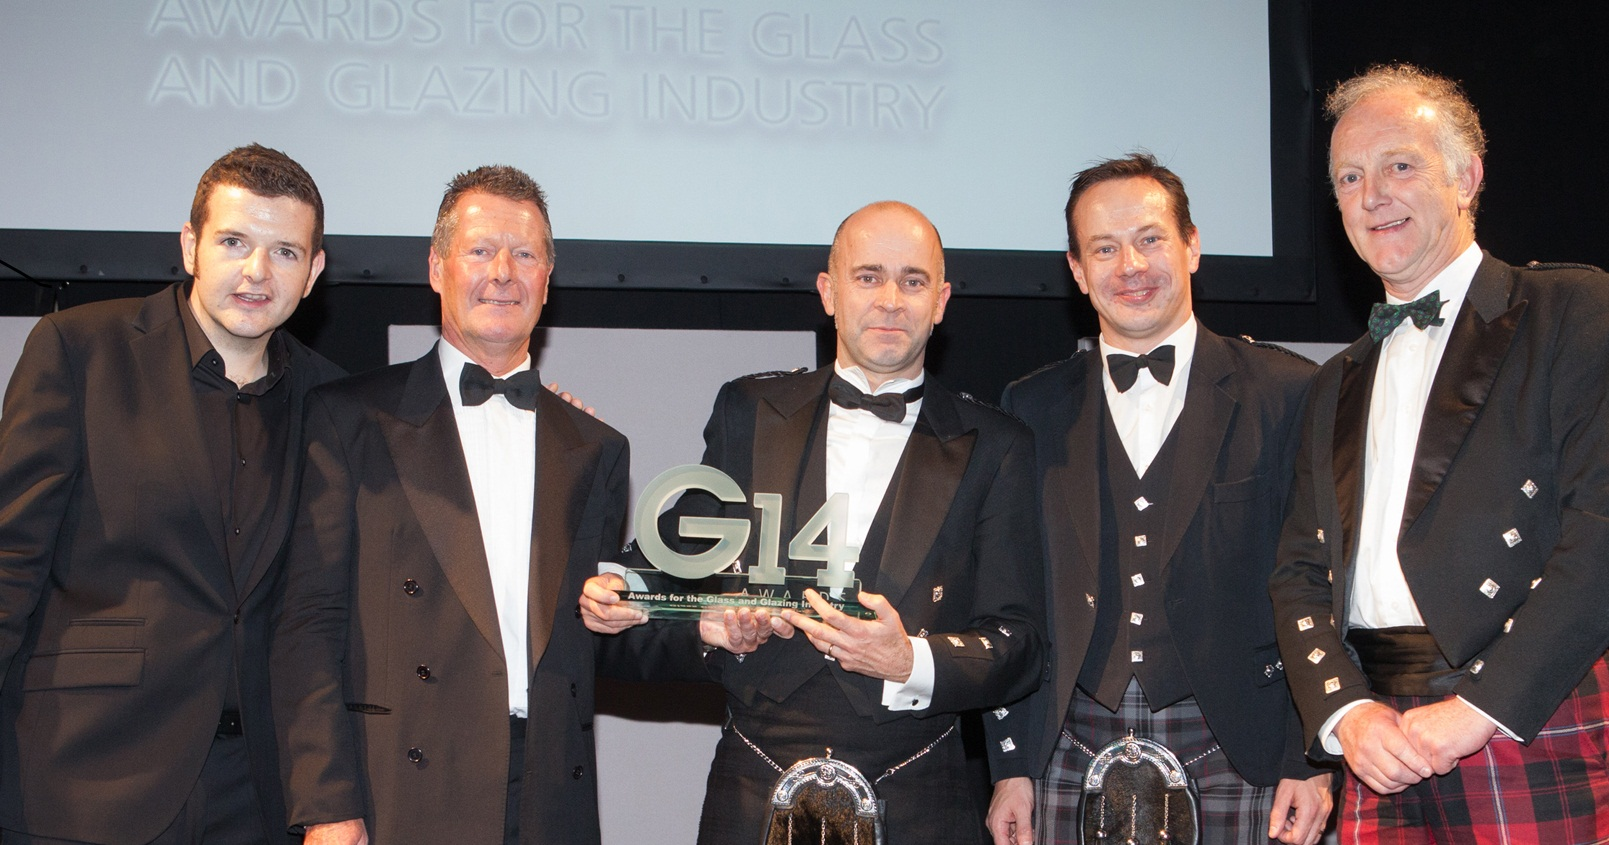 38118_Brian-Baker-Presents-GGF-G14-Award-Glass-Company-of-the-Year-Ravensby-Glass.jpg